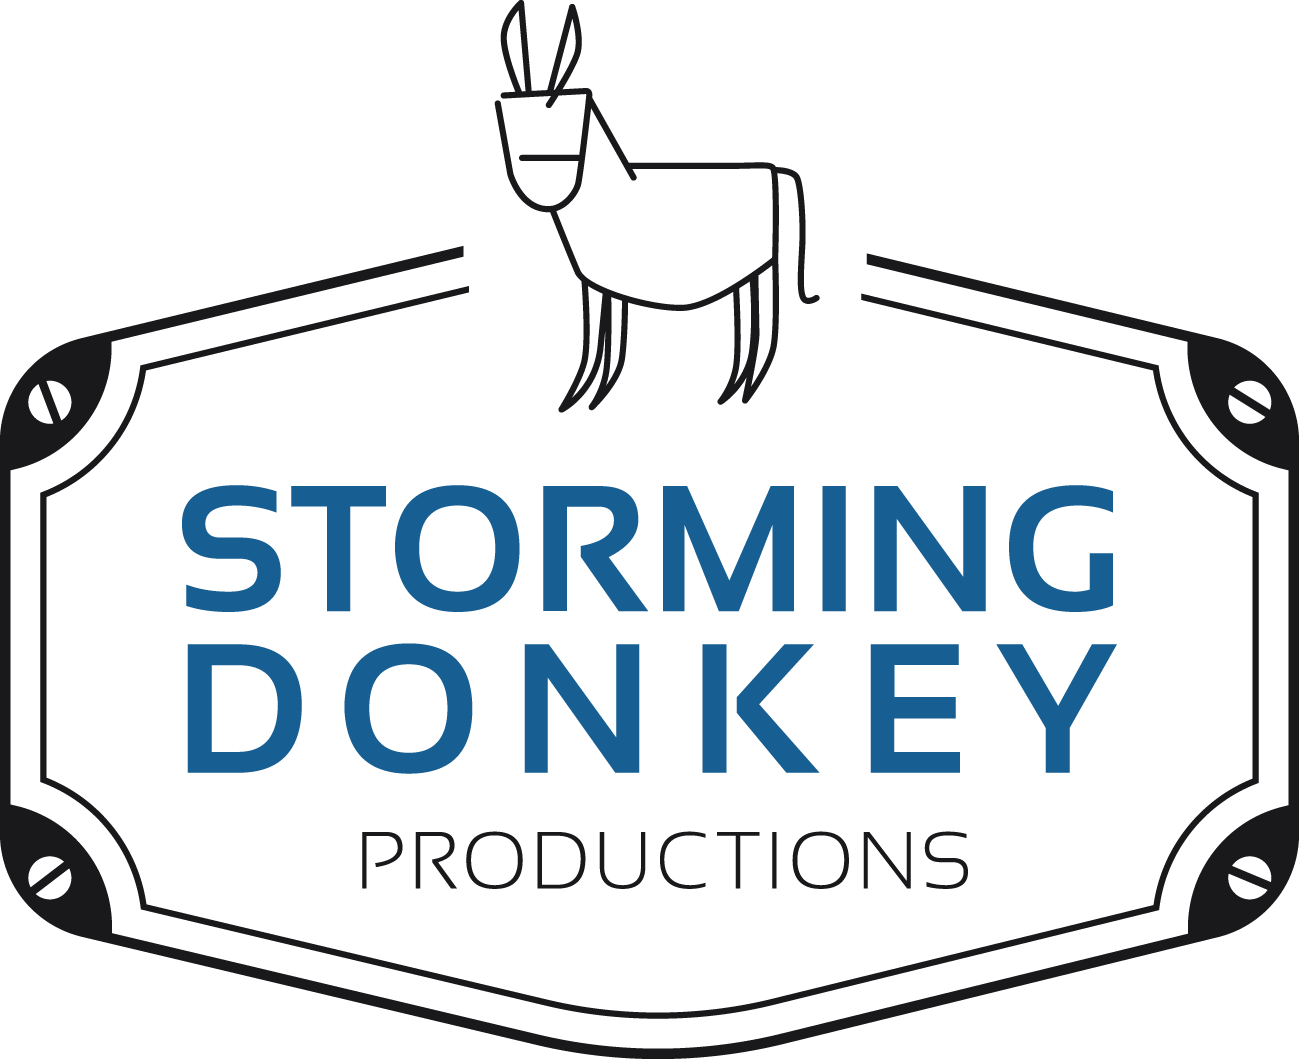 Storming Donkey Productions